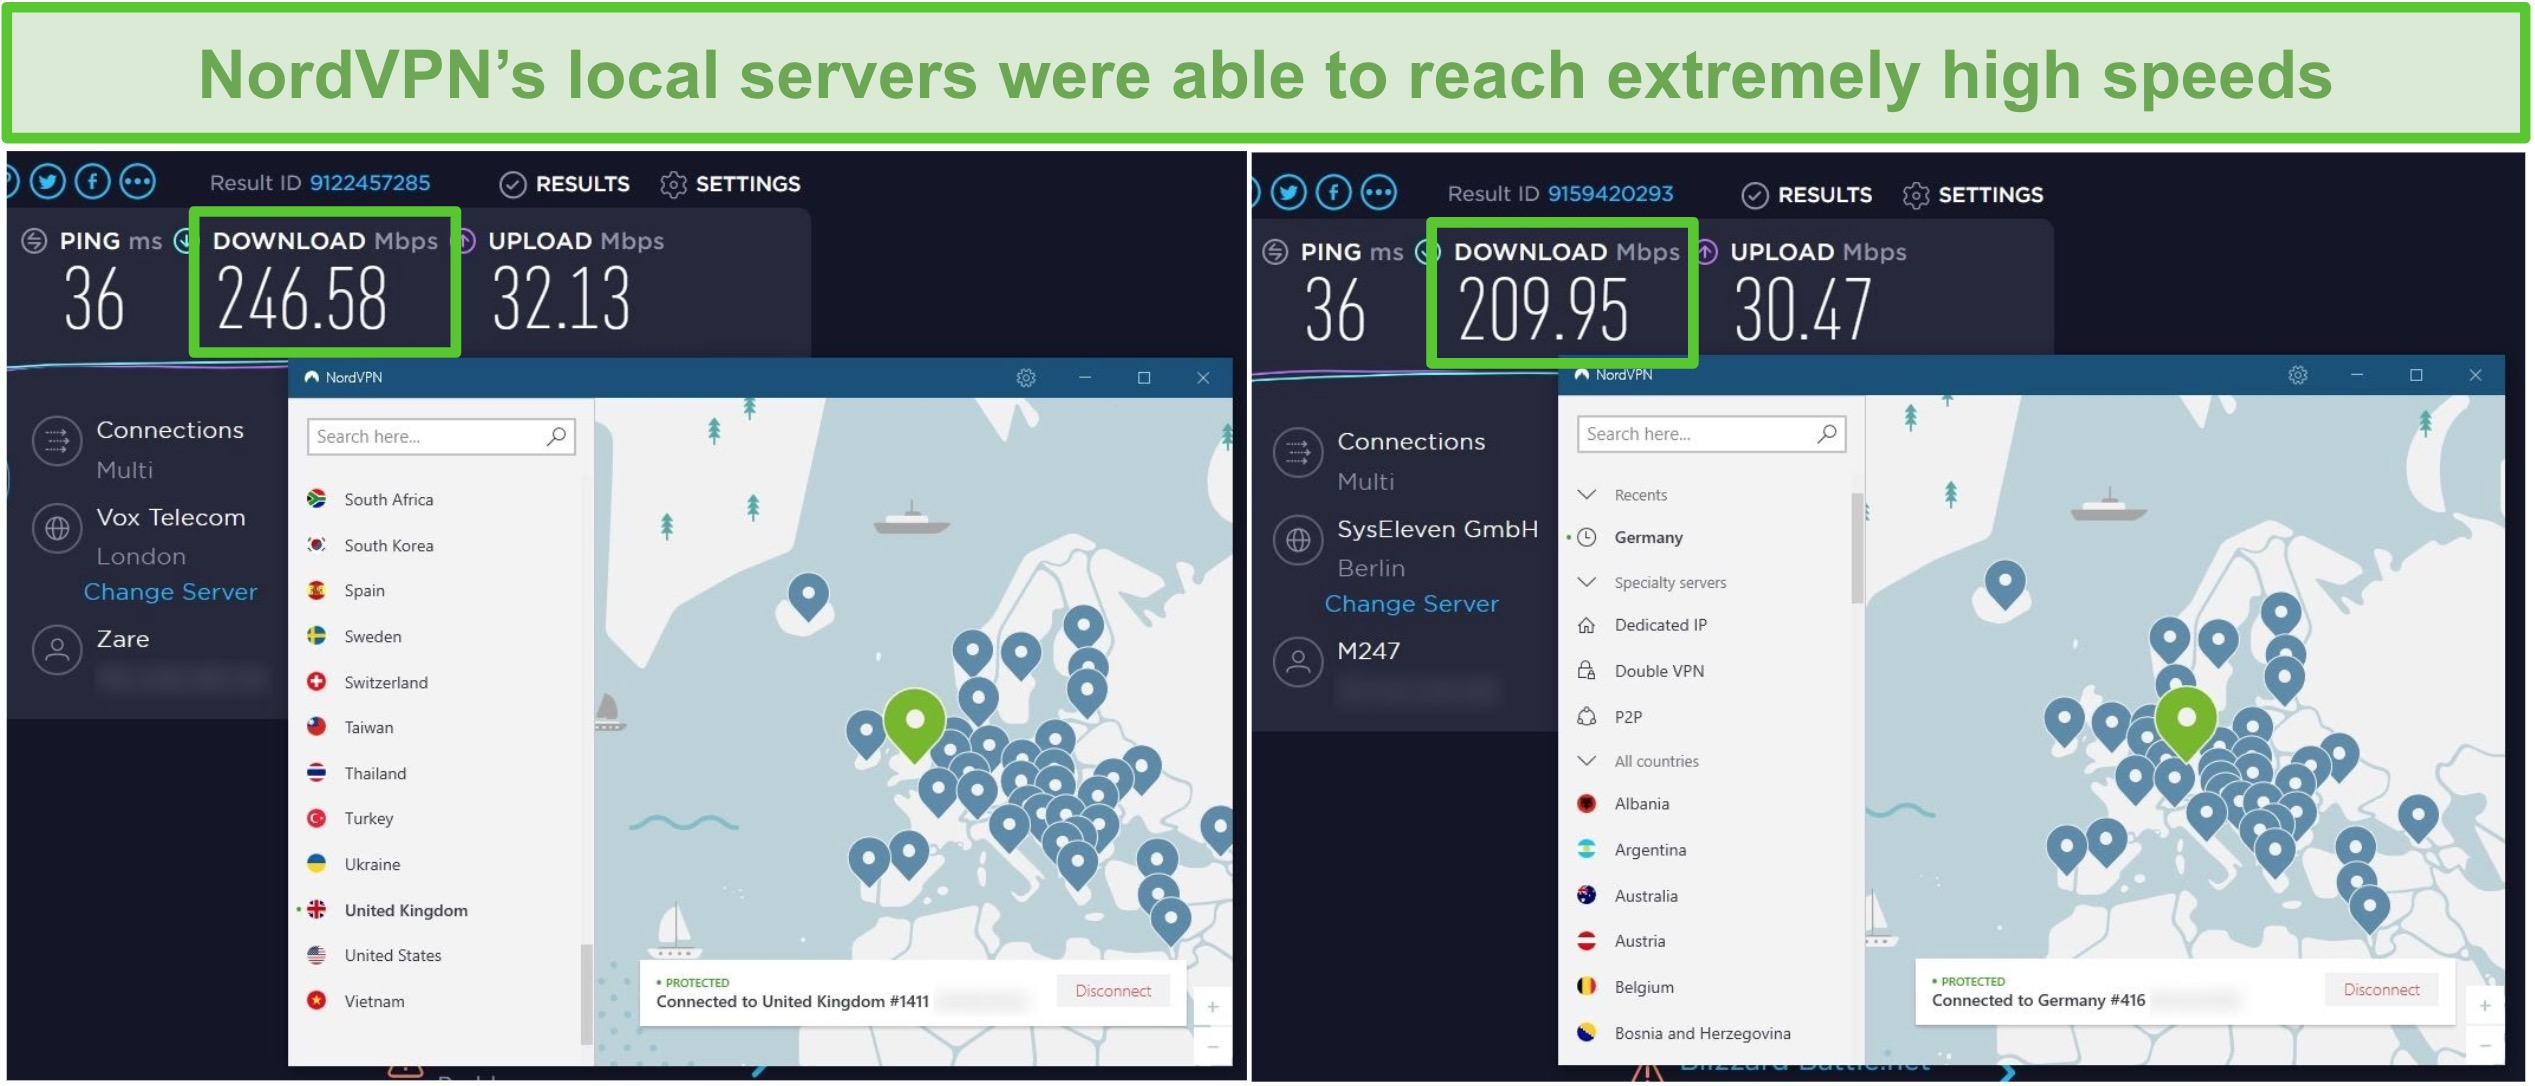 Screenshot of NordVPN servers being speed tested, reaching 246 Mbps in the UK and 209 Mbps in Germany.